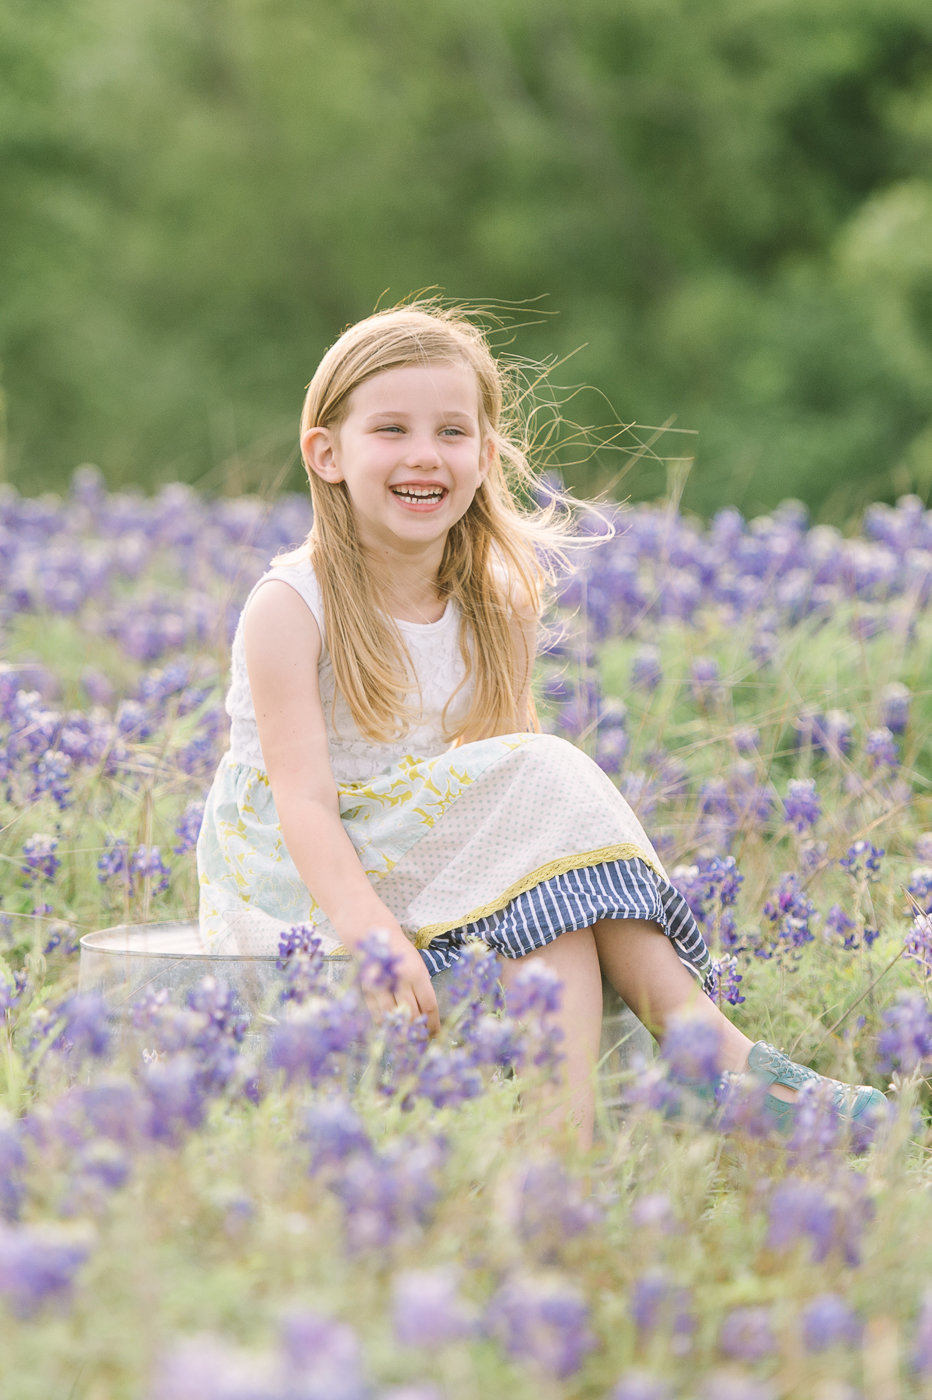 bluebonnet-texas-family-portrait-photographer-22